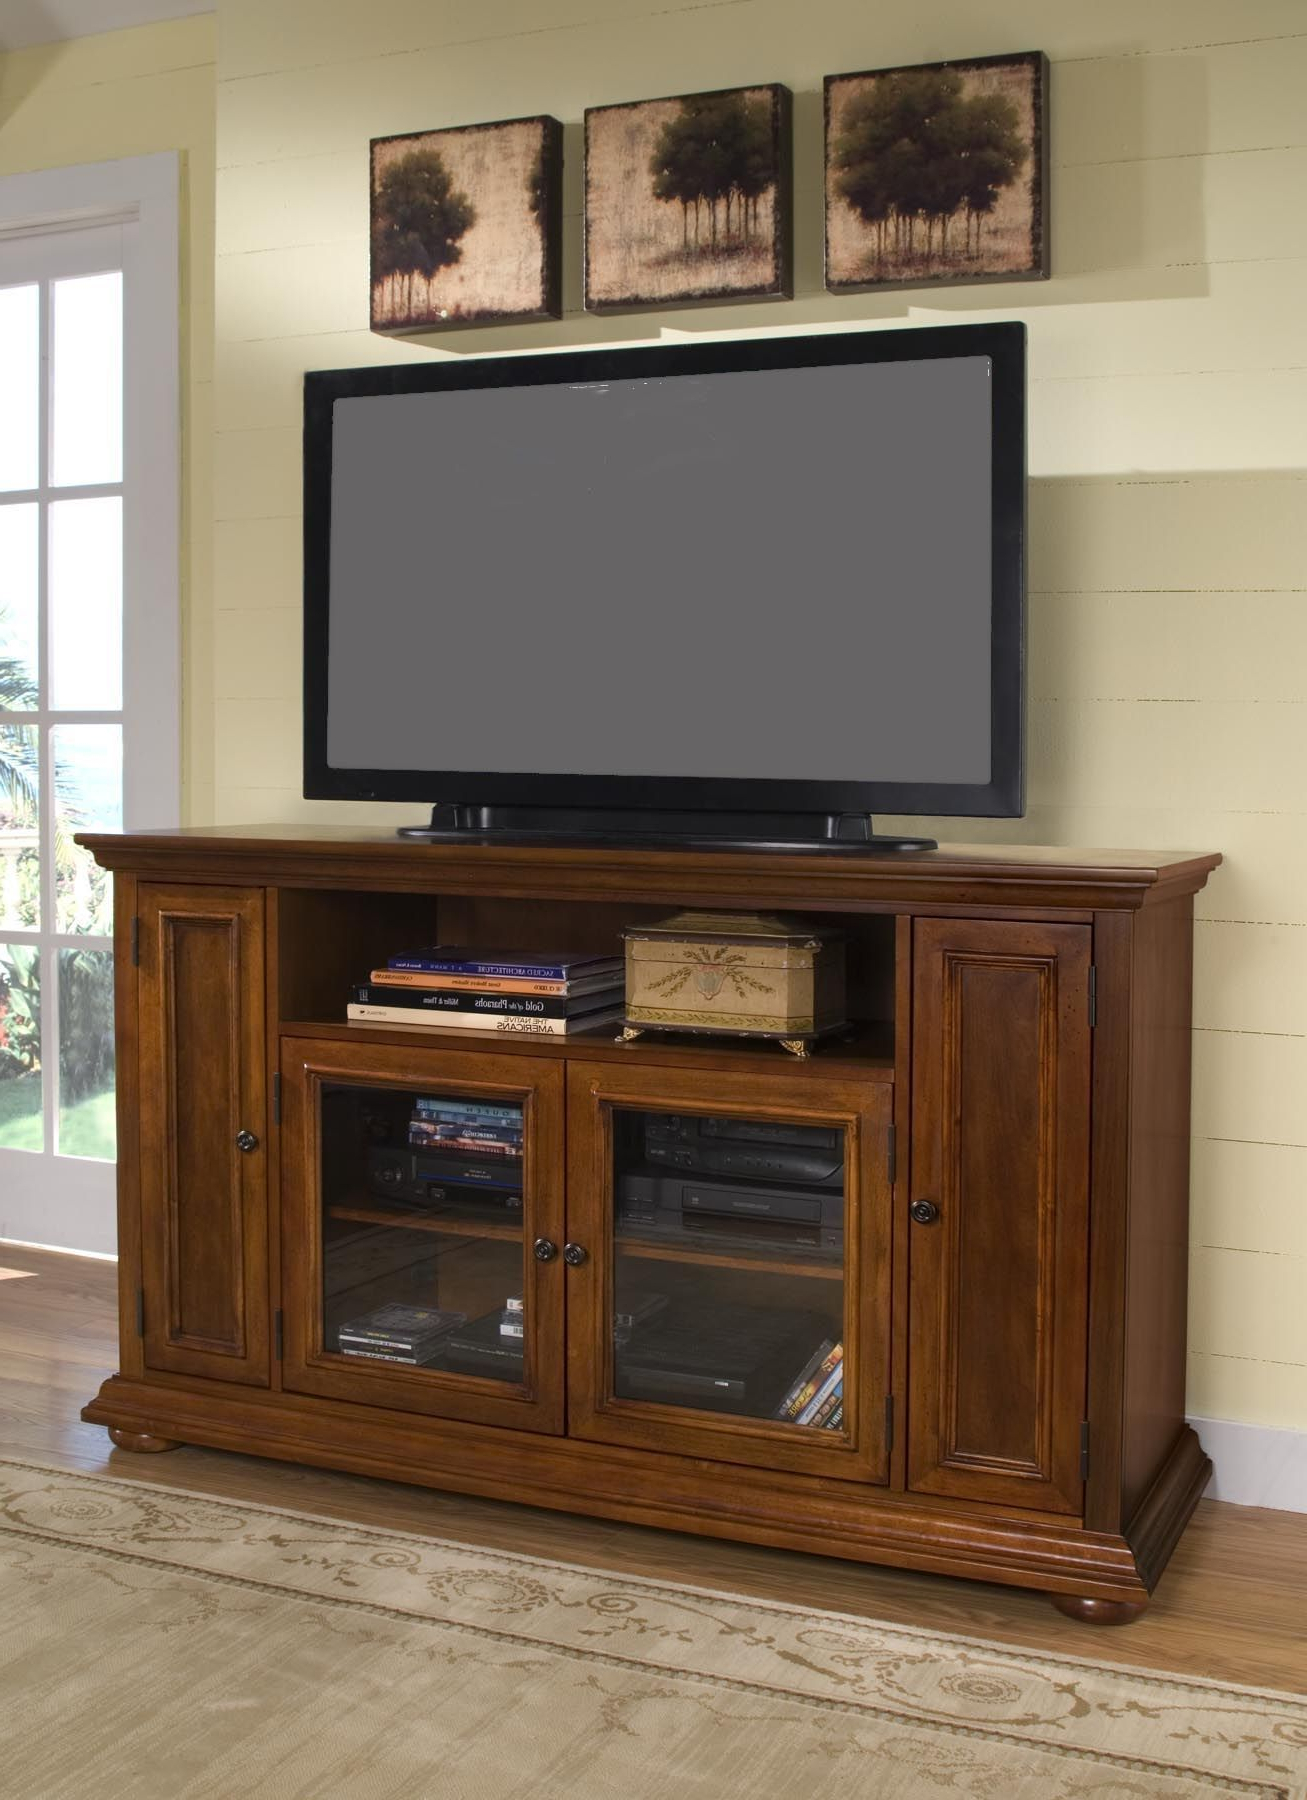 Home Styles Homestead Tv Entertainment Credenza Stand For 60 Intended For 2018 Tall Tv Stands For Flat Screen (View 2 of 20)